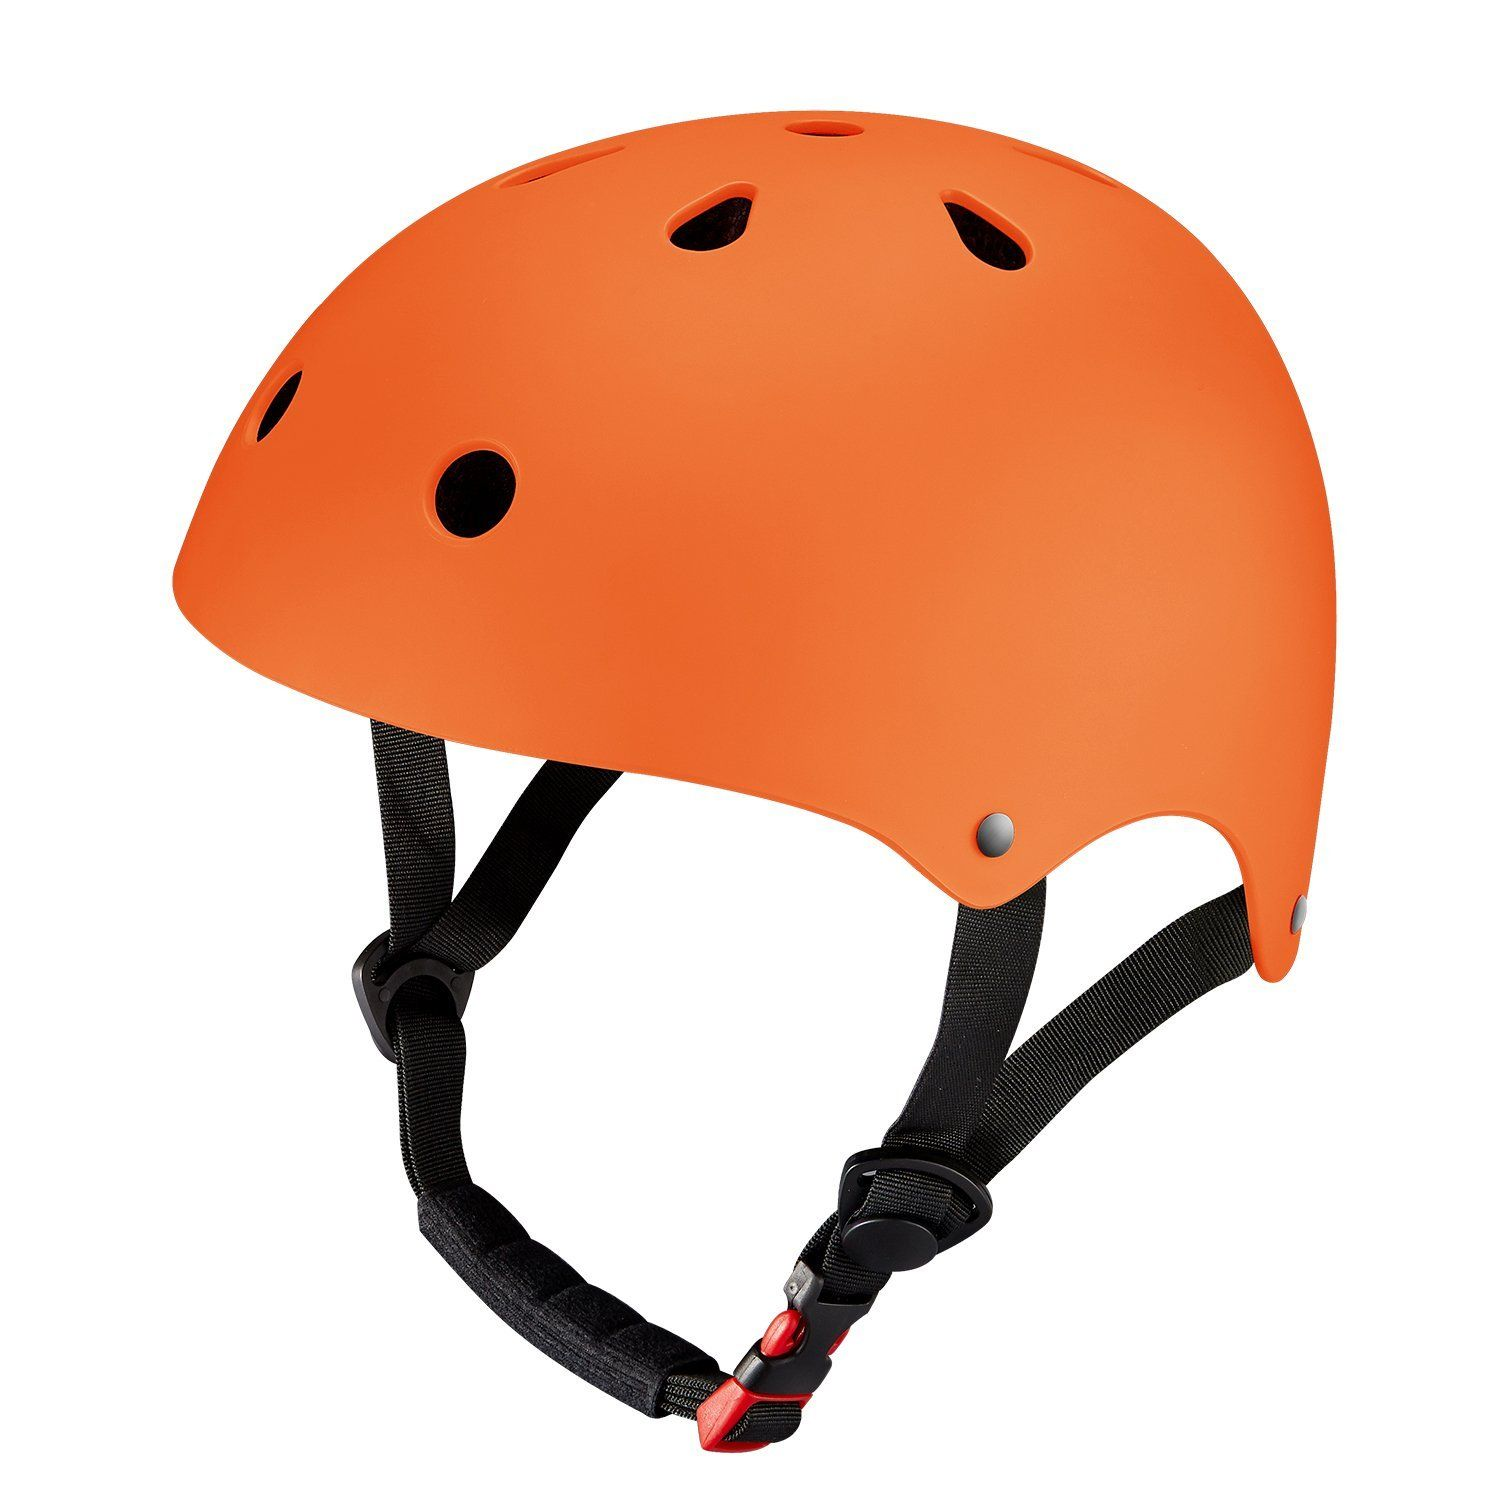 Kids Adult Girls Boys Helmet Bicycle Cycling Scooter Skateboard Protective S M L